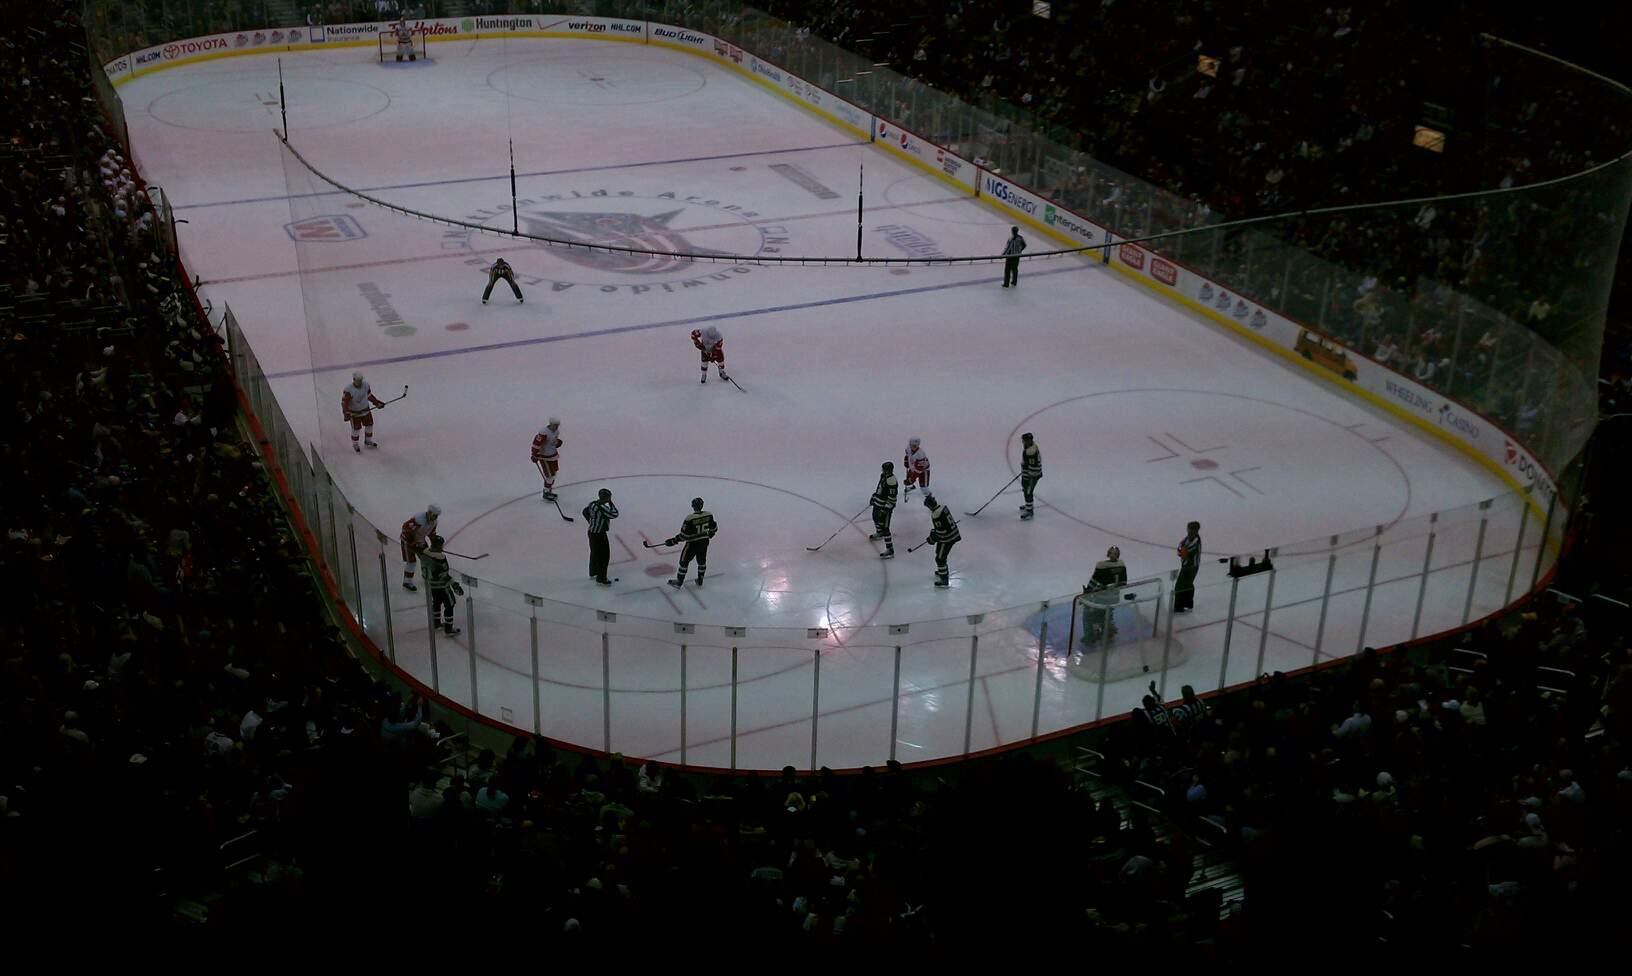 Nationwide Arena Section 226 Row D